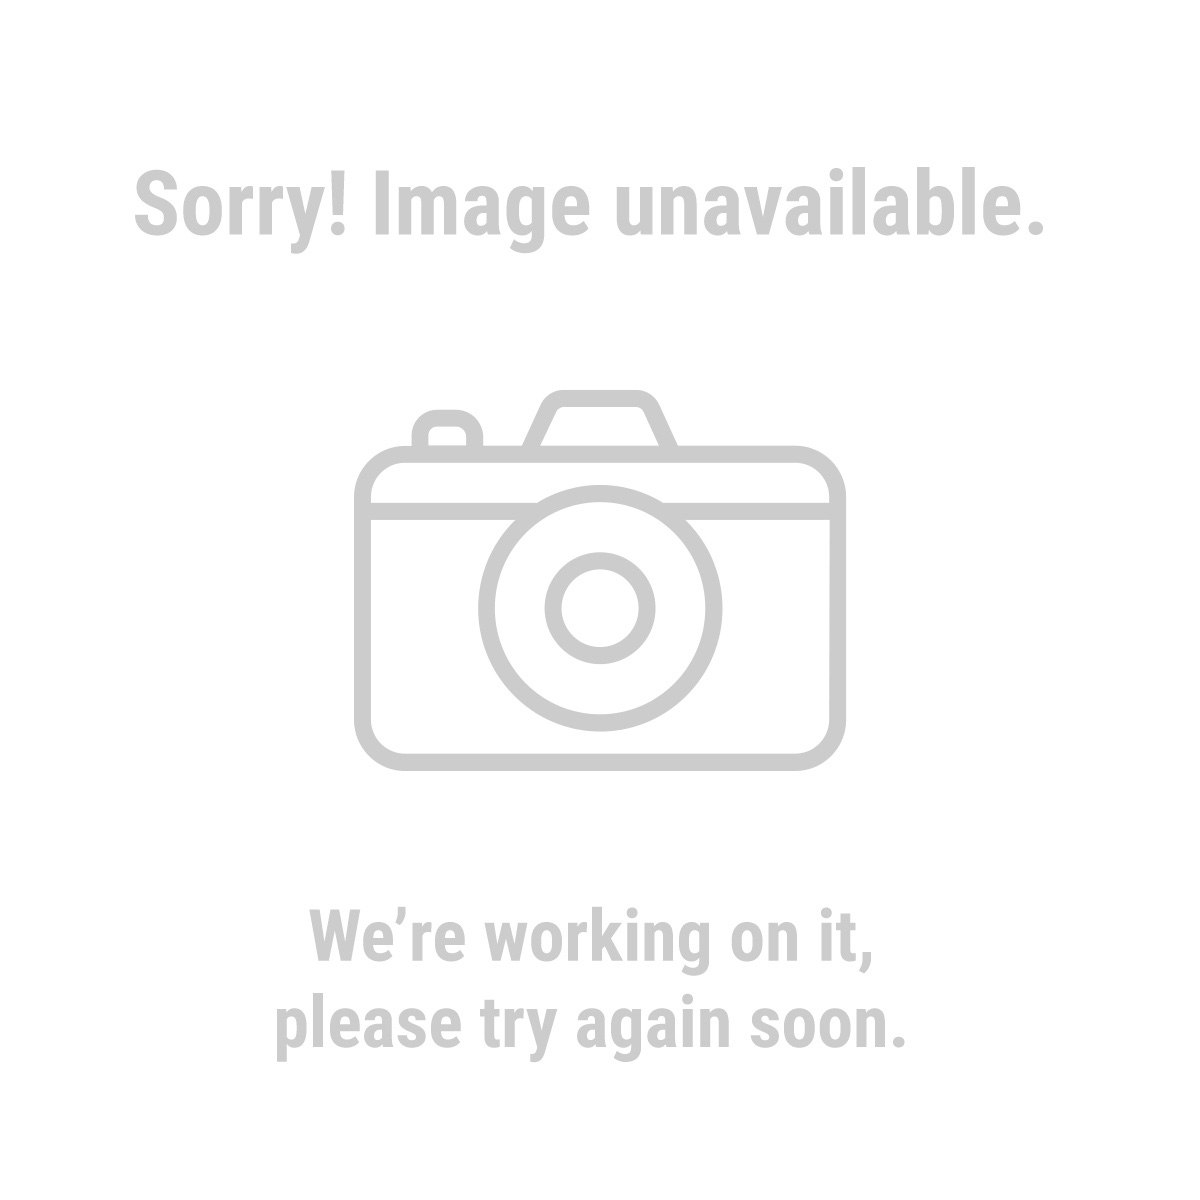 Woodworking Vise Harbor Freight With Excellent Trend In ...